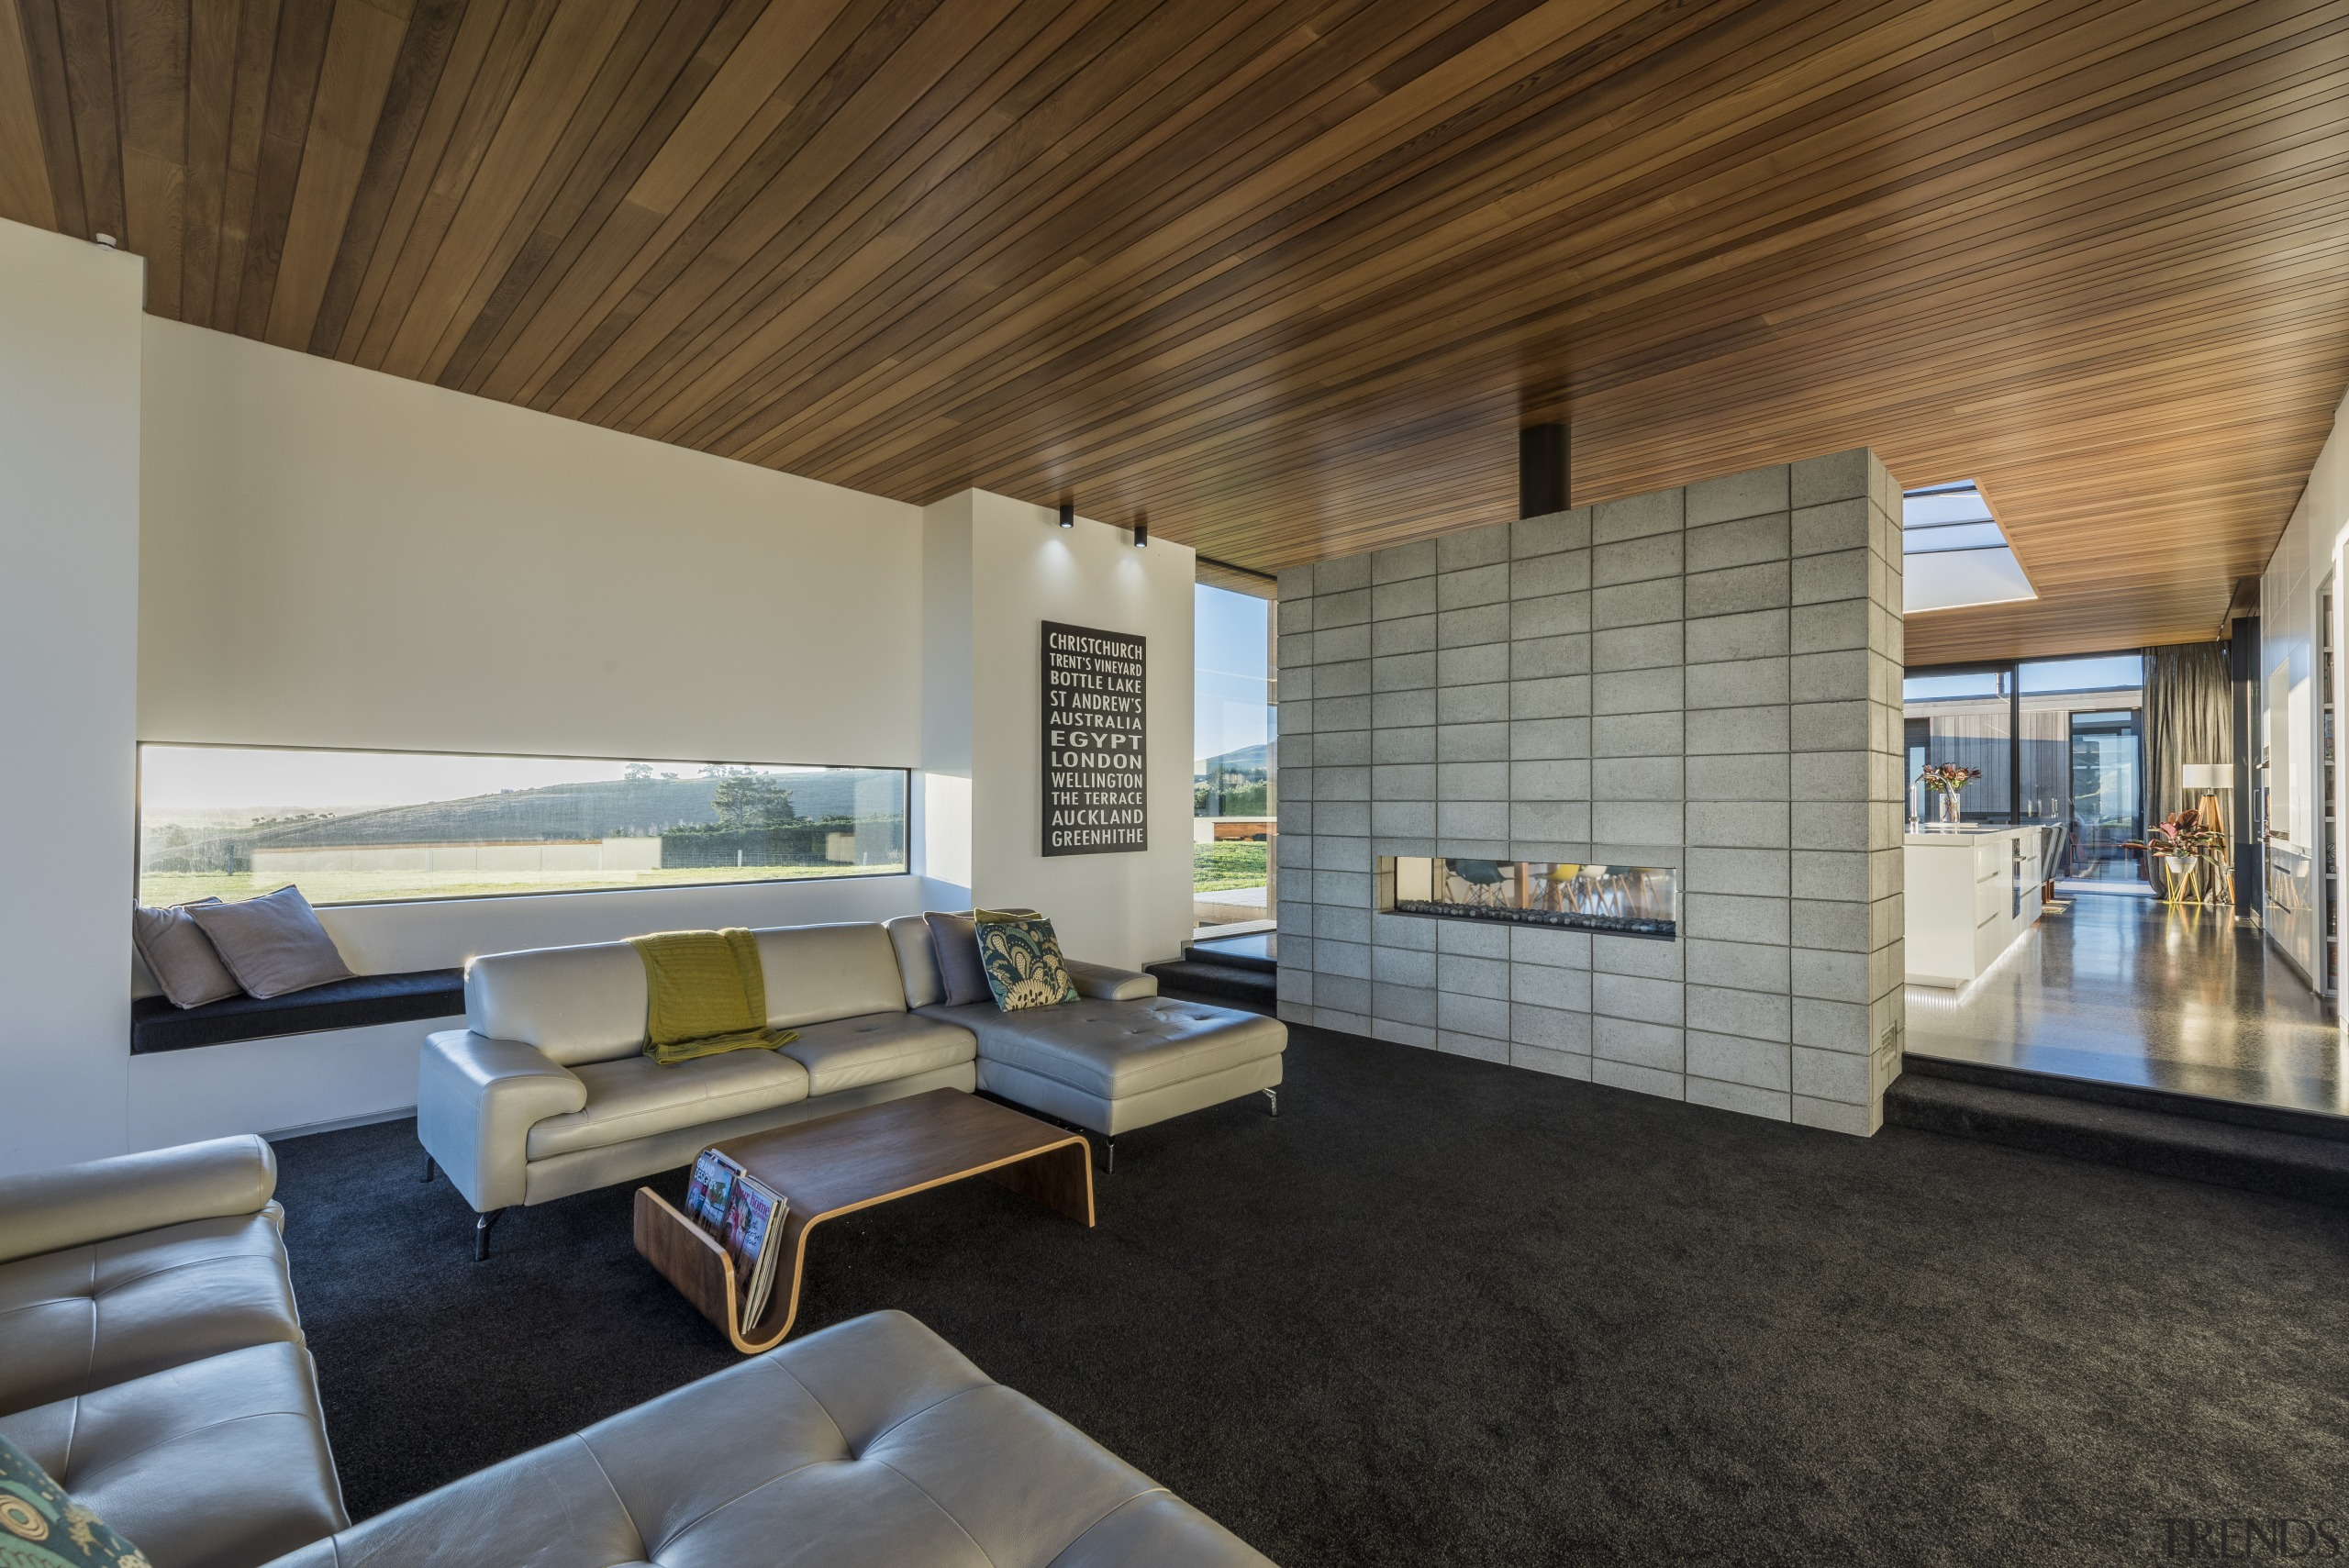 Separated by a partial wall from this homes architecture, ceiling, house, interior design, living room, real estate, gray, brown